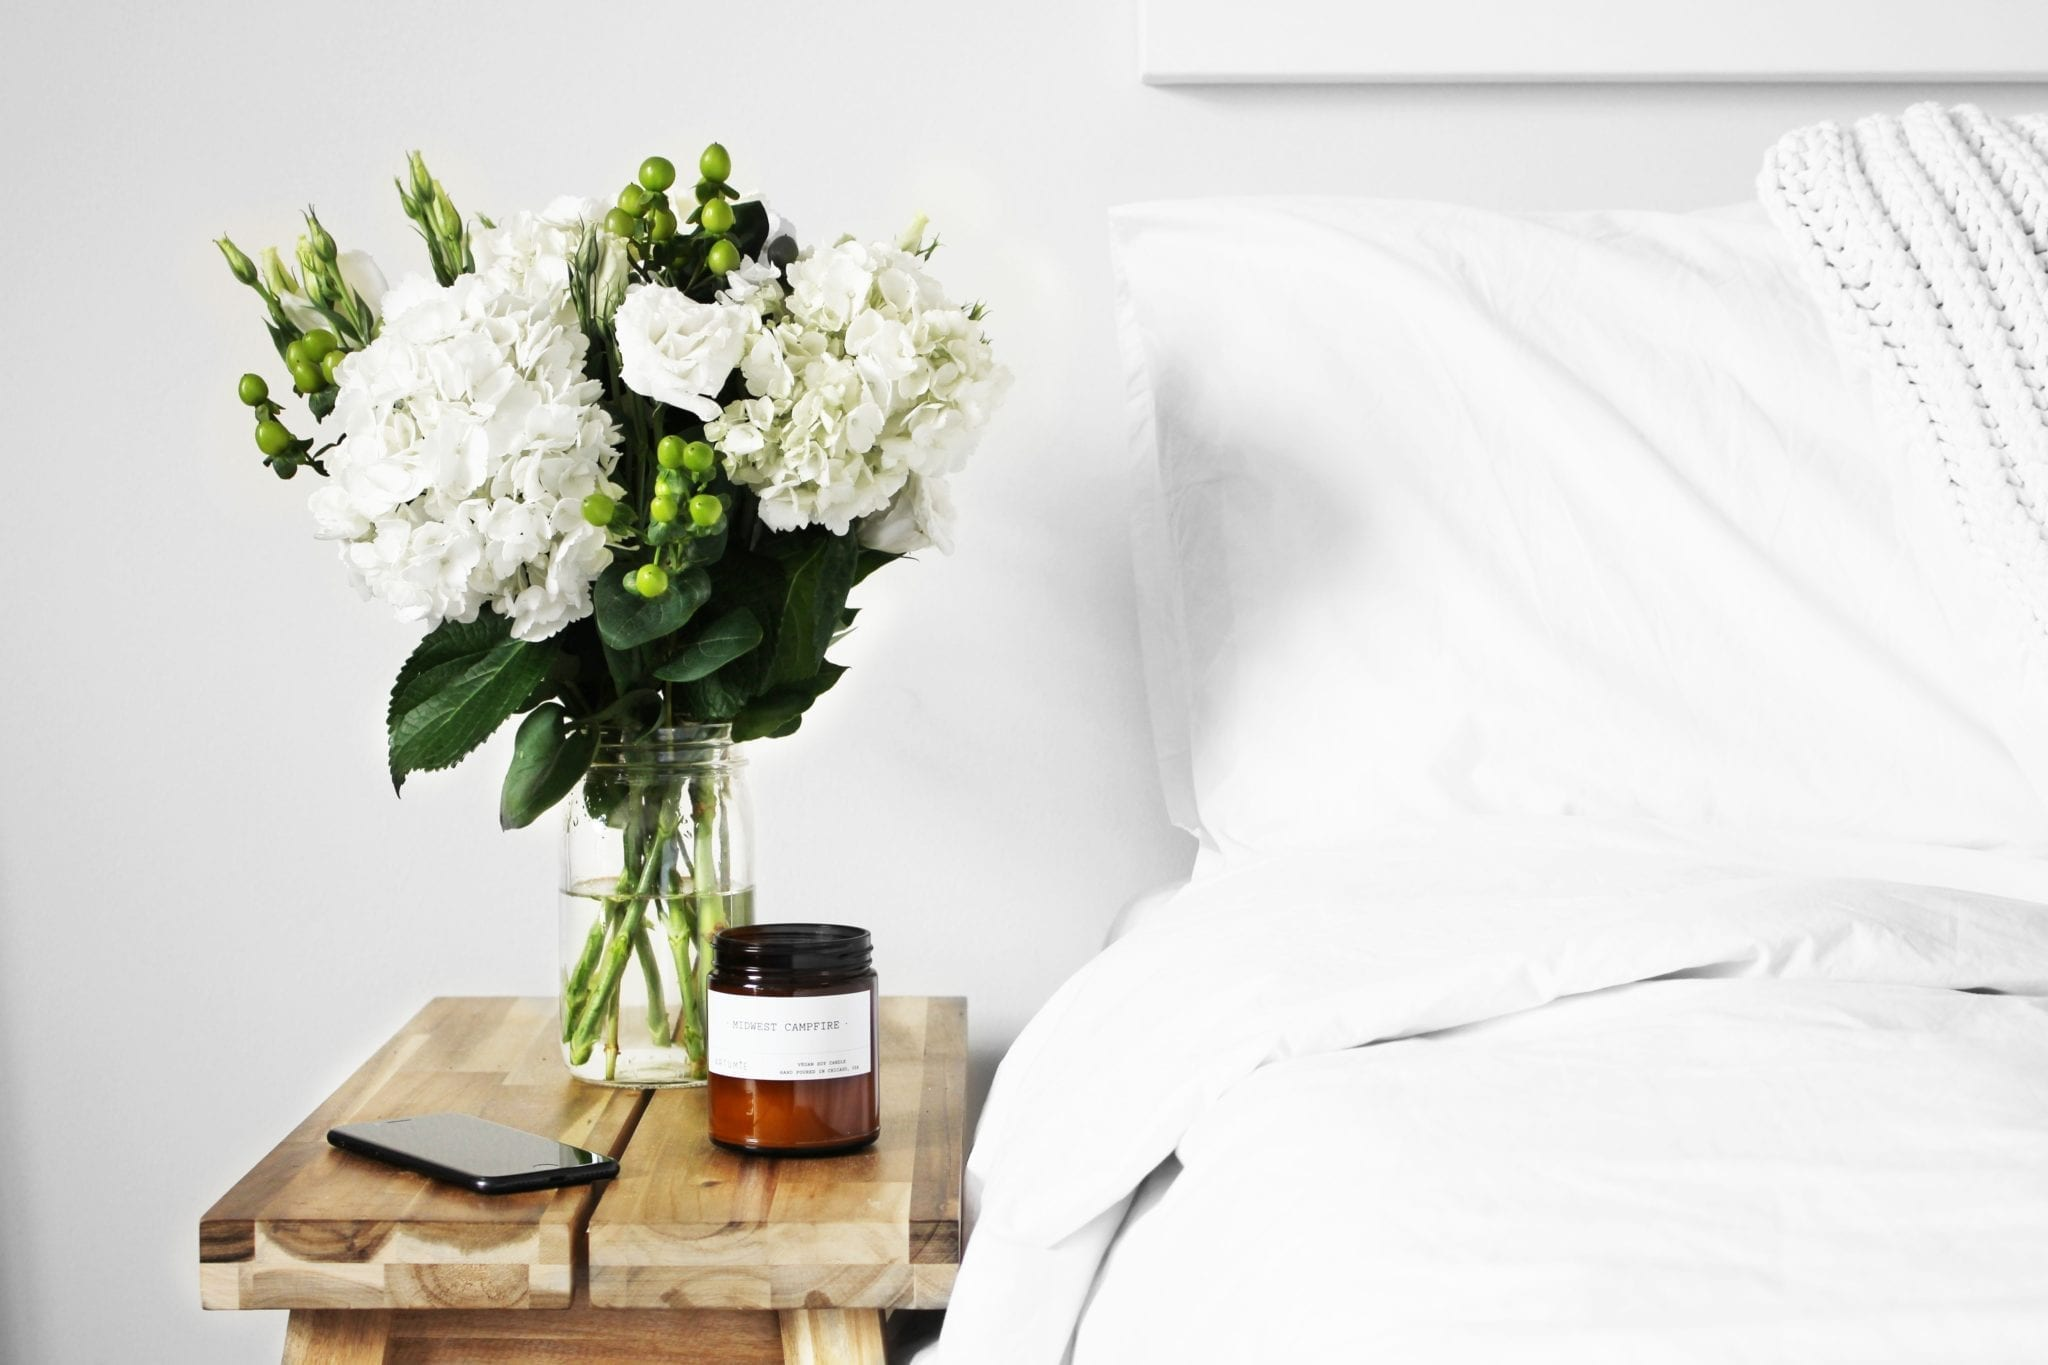 5 SIMPLE WAYS TO CREATE A MINDFUL HOME